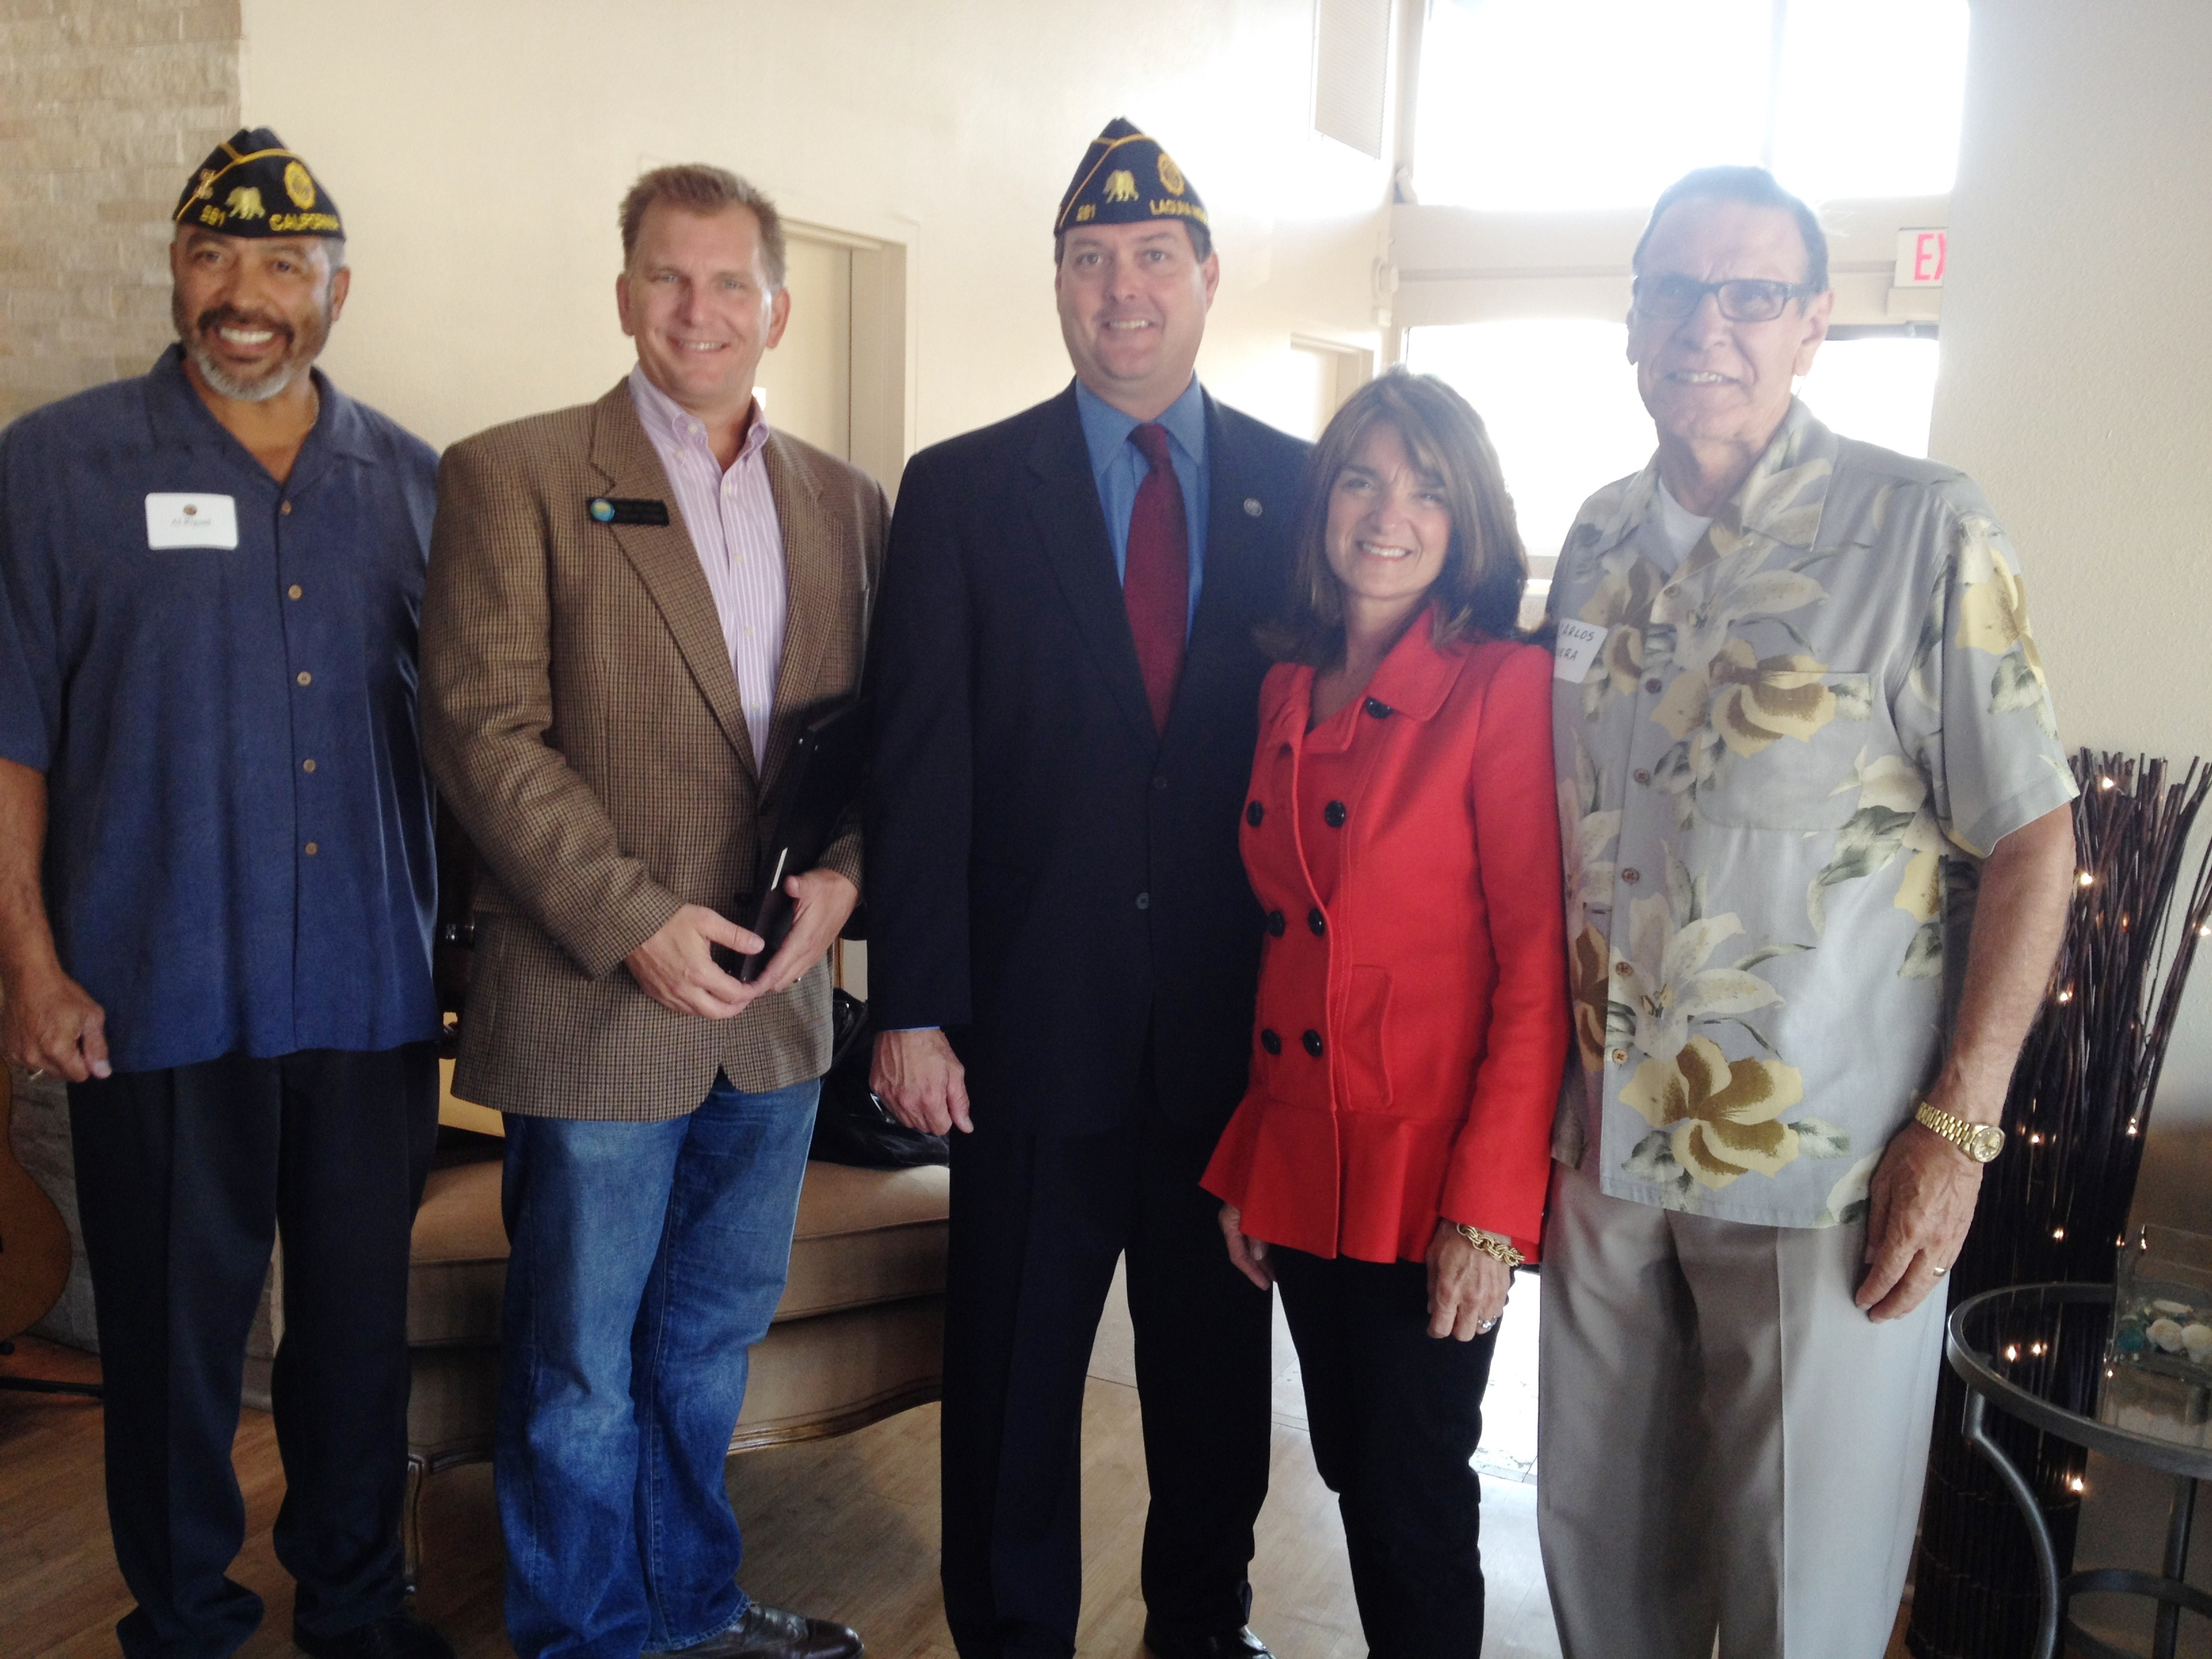 Local leaders and members of the American Legion Post 281, serving Dana Point, Laguna Niguel, Aliso Viejo and Laguna Hills, gathered at the post's new Harbor home on Monday. Photo by Andrea Papagianis